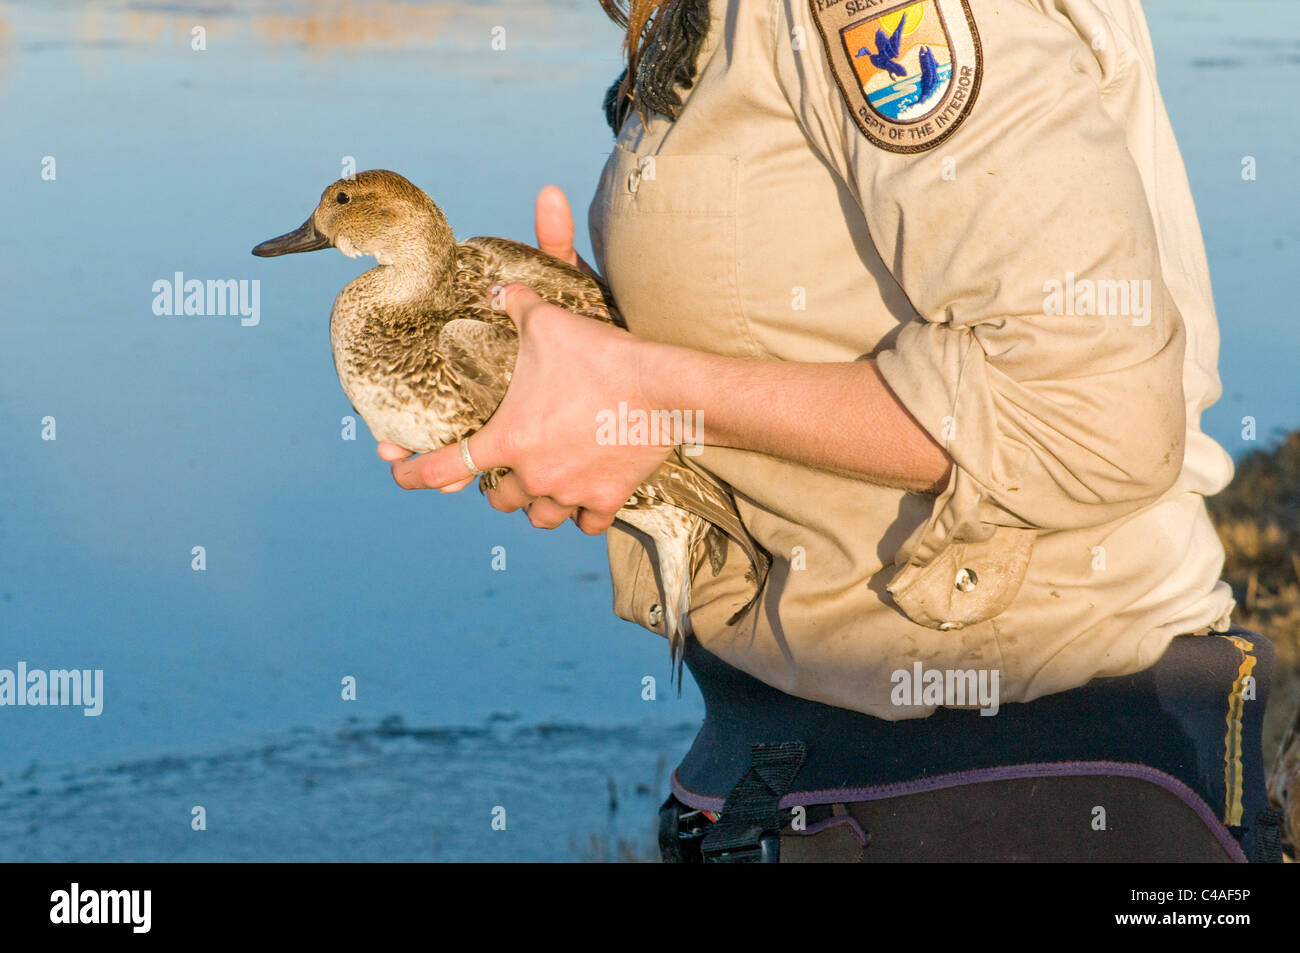 U.S. Fish and Wildlife Service biologist releasing a newly-banded female pintail at Bosque del Apache Nat. Wildlife - Stock Image